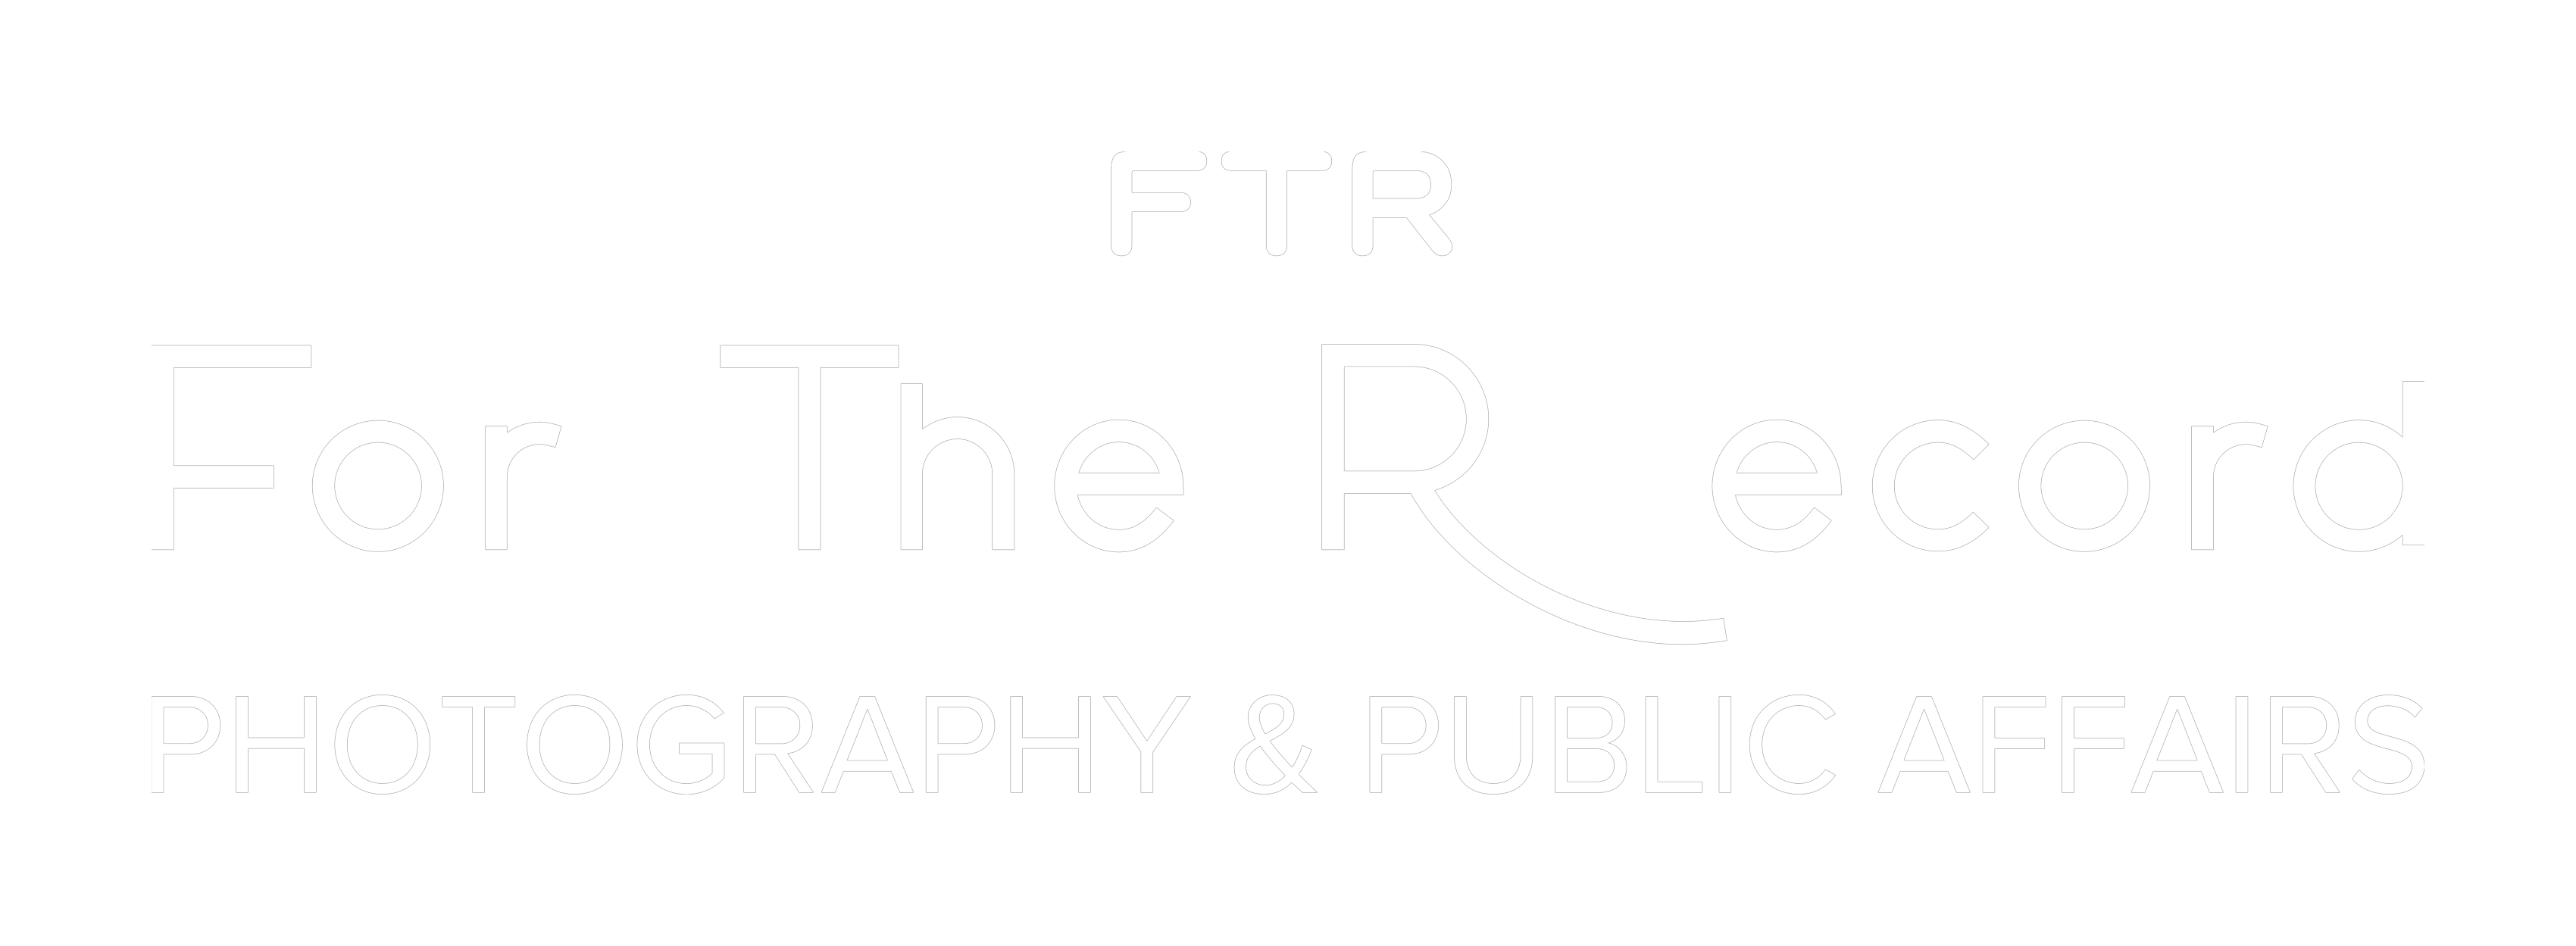 For The Record Photography and Public Affairs, Inc.